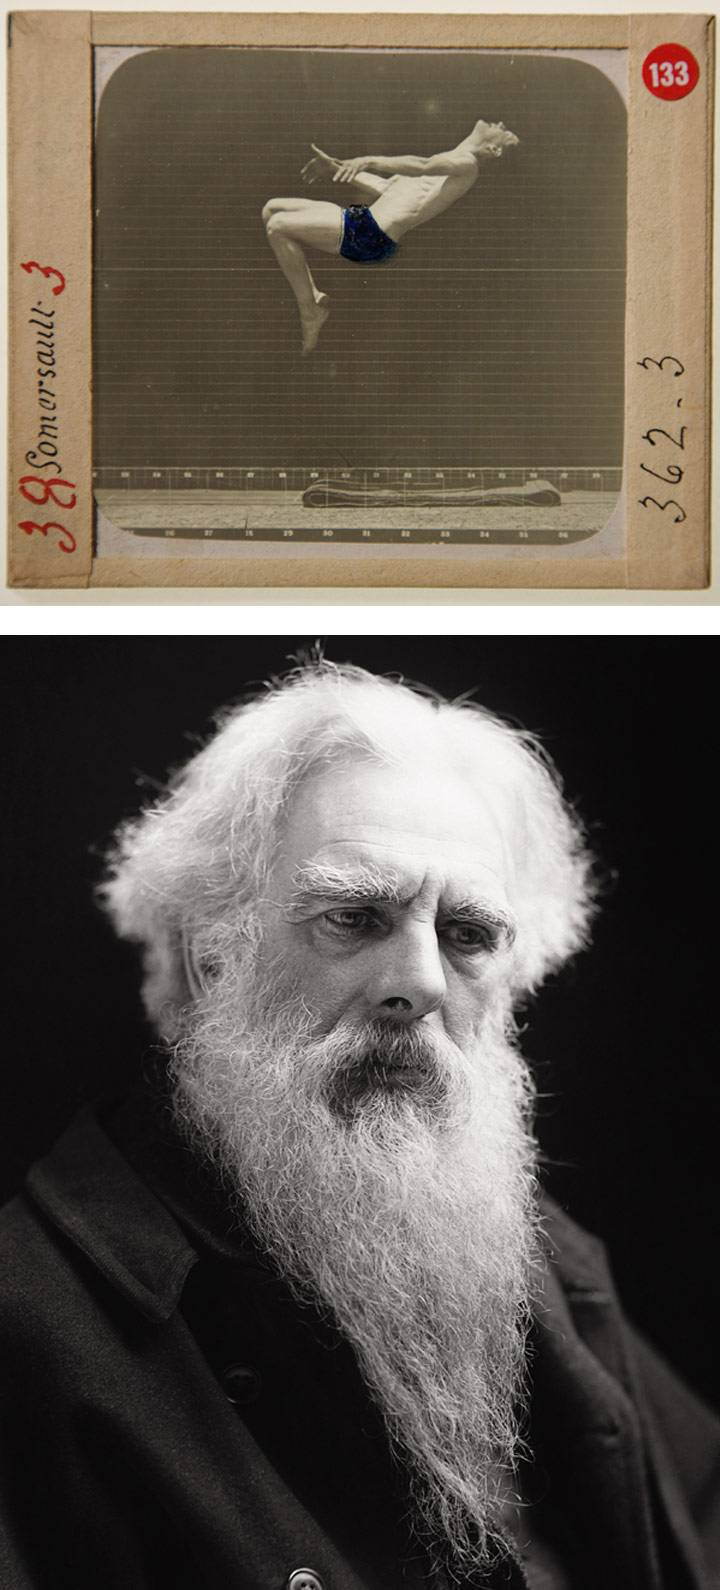 Eadweard Muybridge in Kingston, 1894-1904